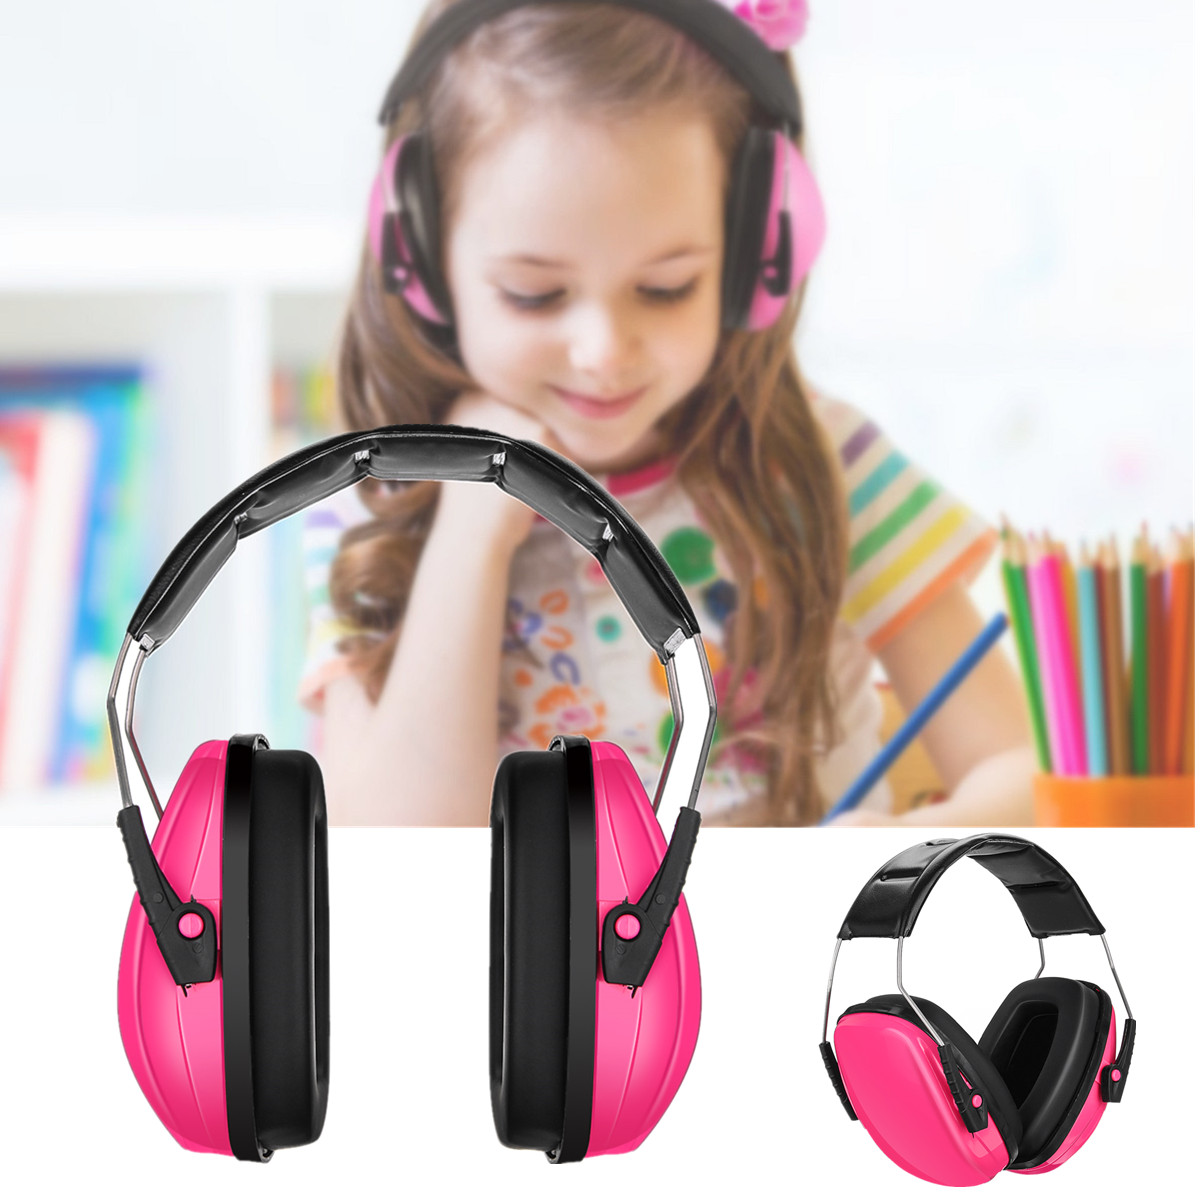 Kids Earmuffs Hearing Protection Ear Defenders Noise Reduction Adjustable  Headband Ear Protection For Child Baby Sleeping Studying | Walmart Canada